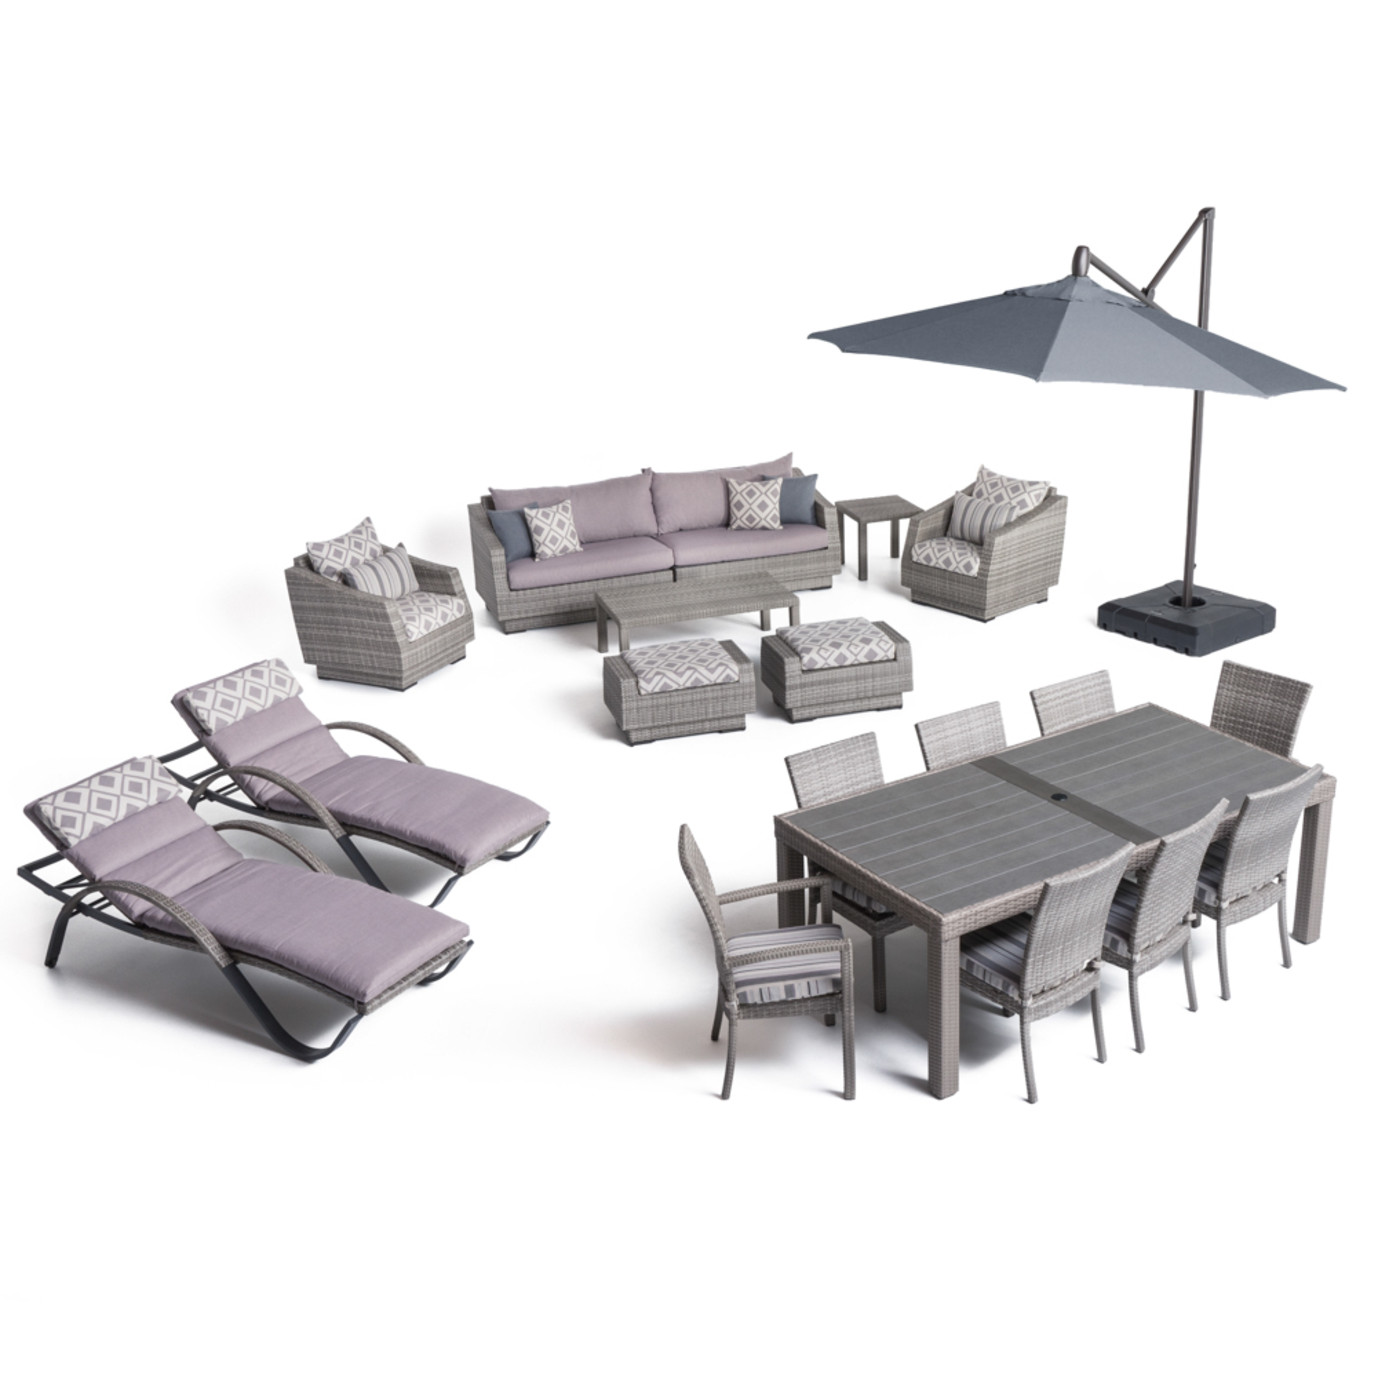 Cannes™ 20pc Outdoor Estate Set - Wisteria Lavender